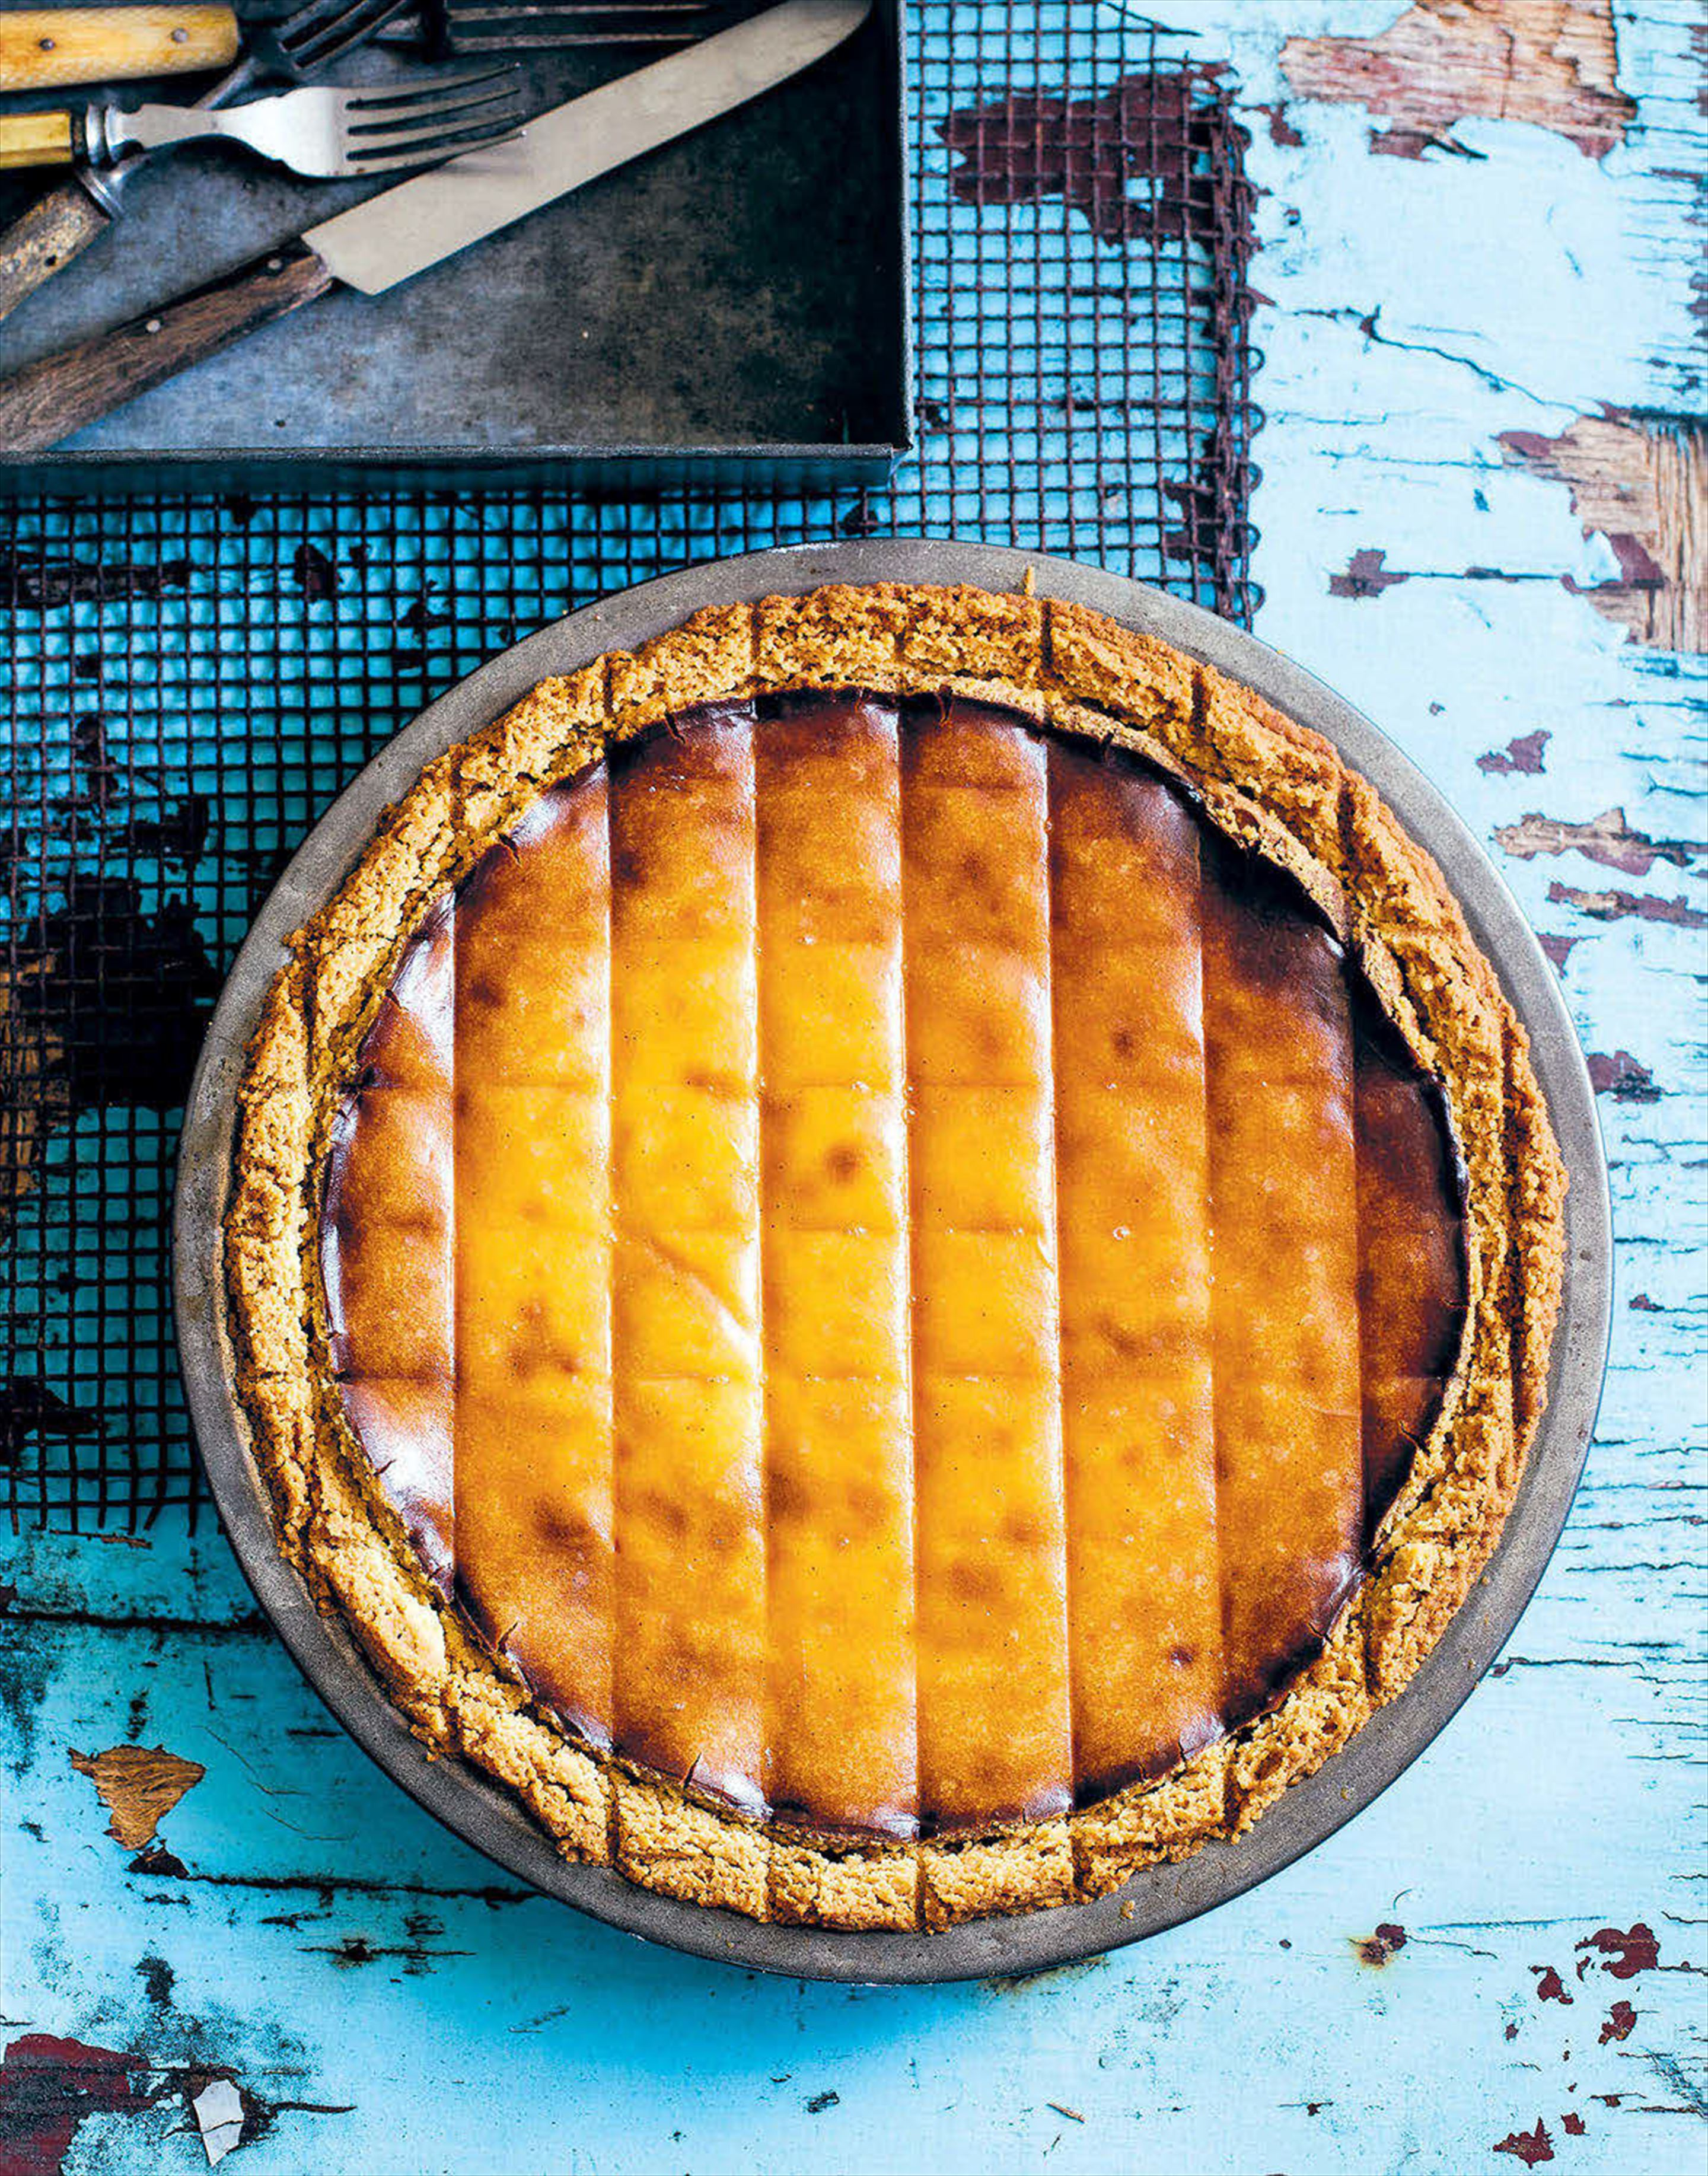 Baked ricotta, orange blossom and date pie